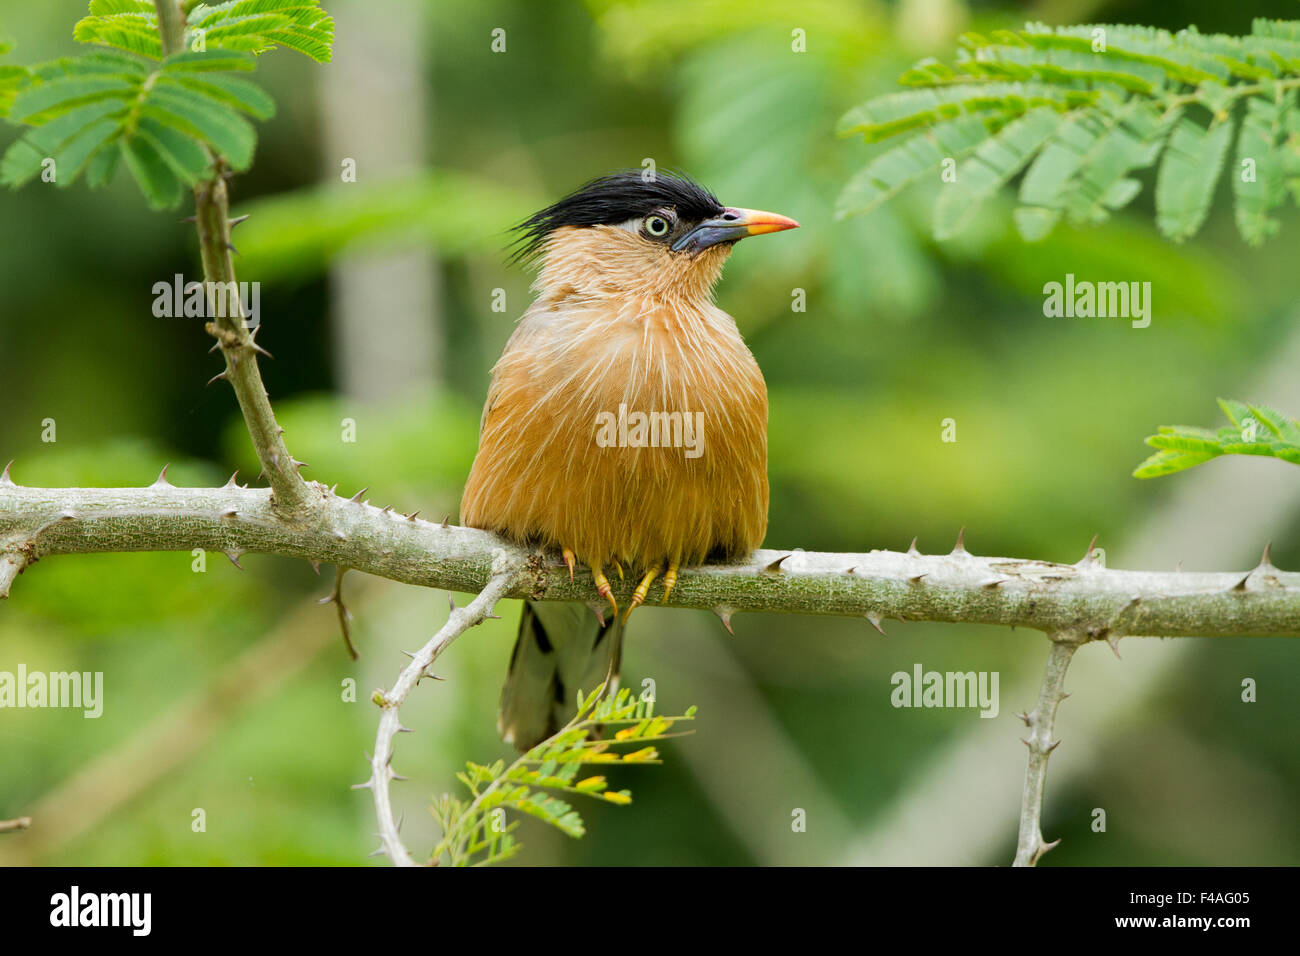 The brahminy myna or brahminy starling (Sturnia pagodarum[2]) is a member of the starling family of birds. - Stock Image